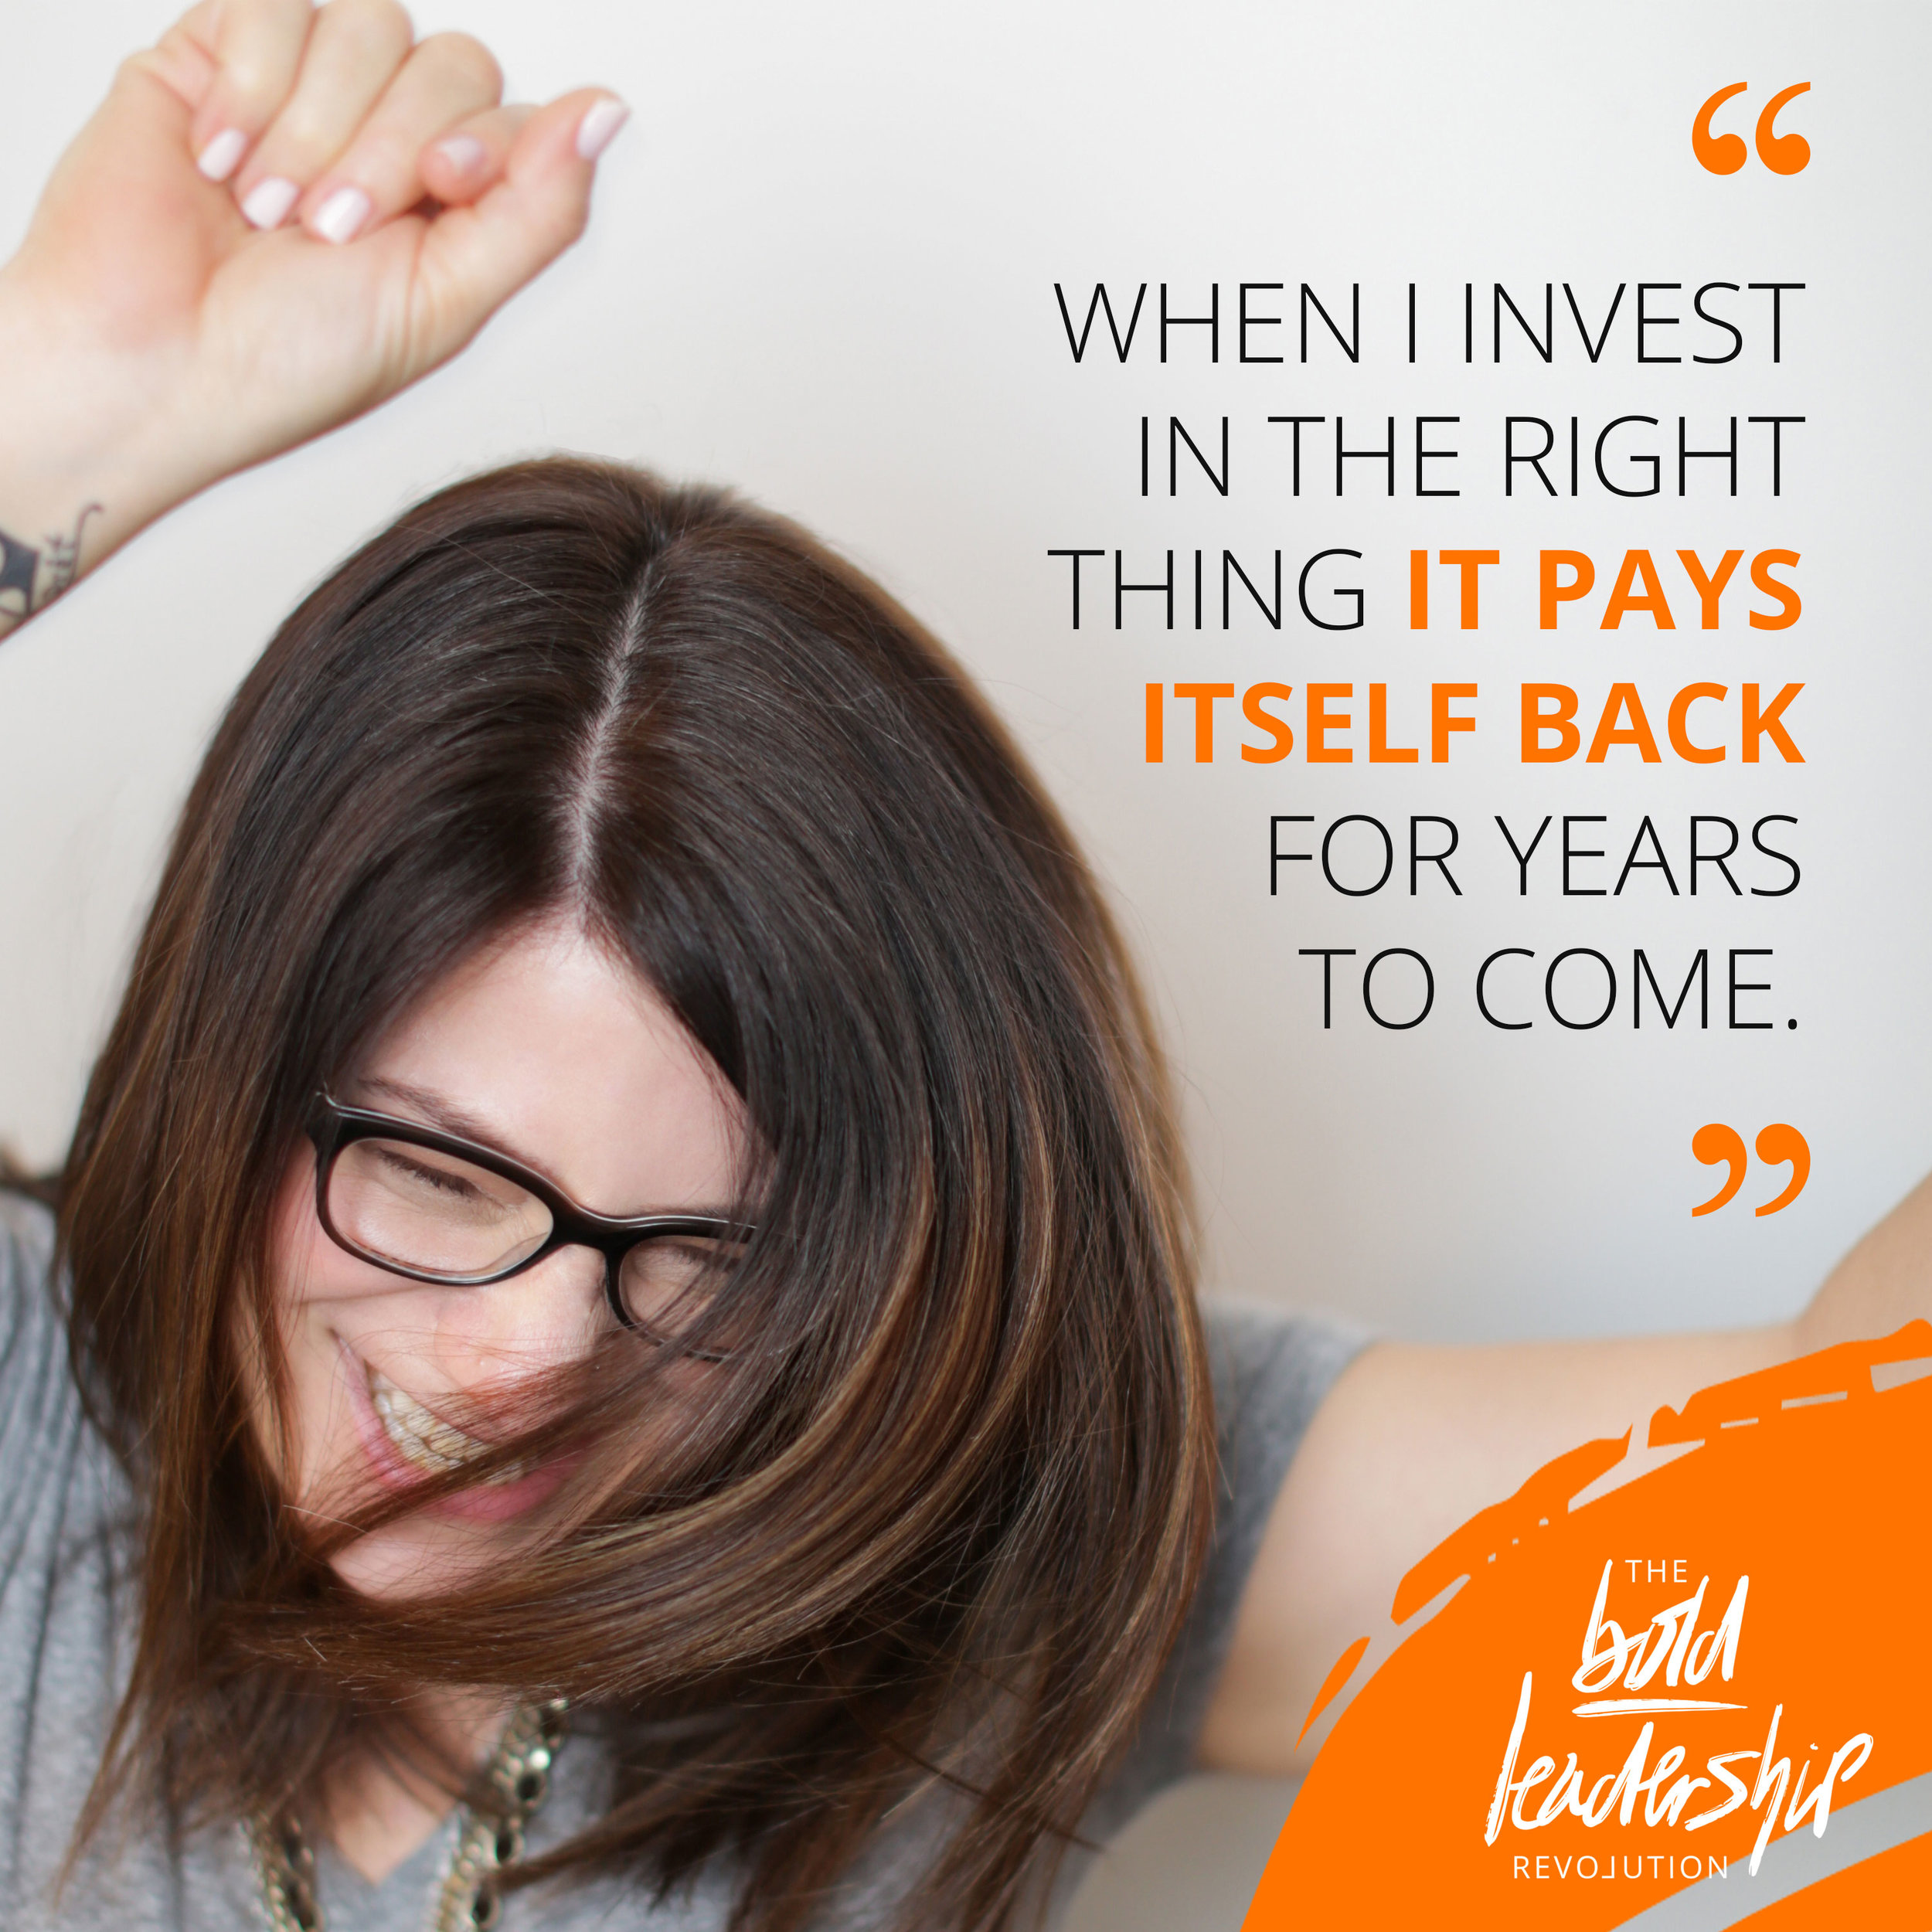 Episode-9-Quote-When-I-invest-in-the-right-thing-it-pays-itself-back-for-years-to-come.2.jpg